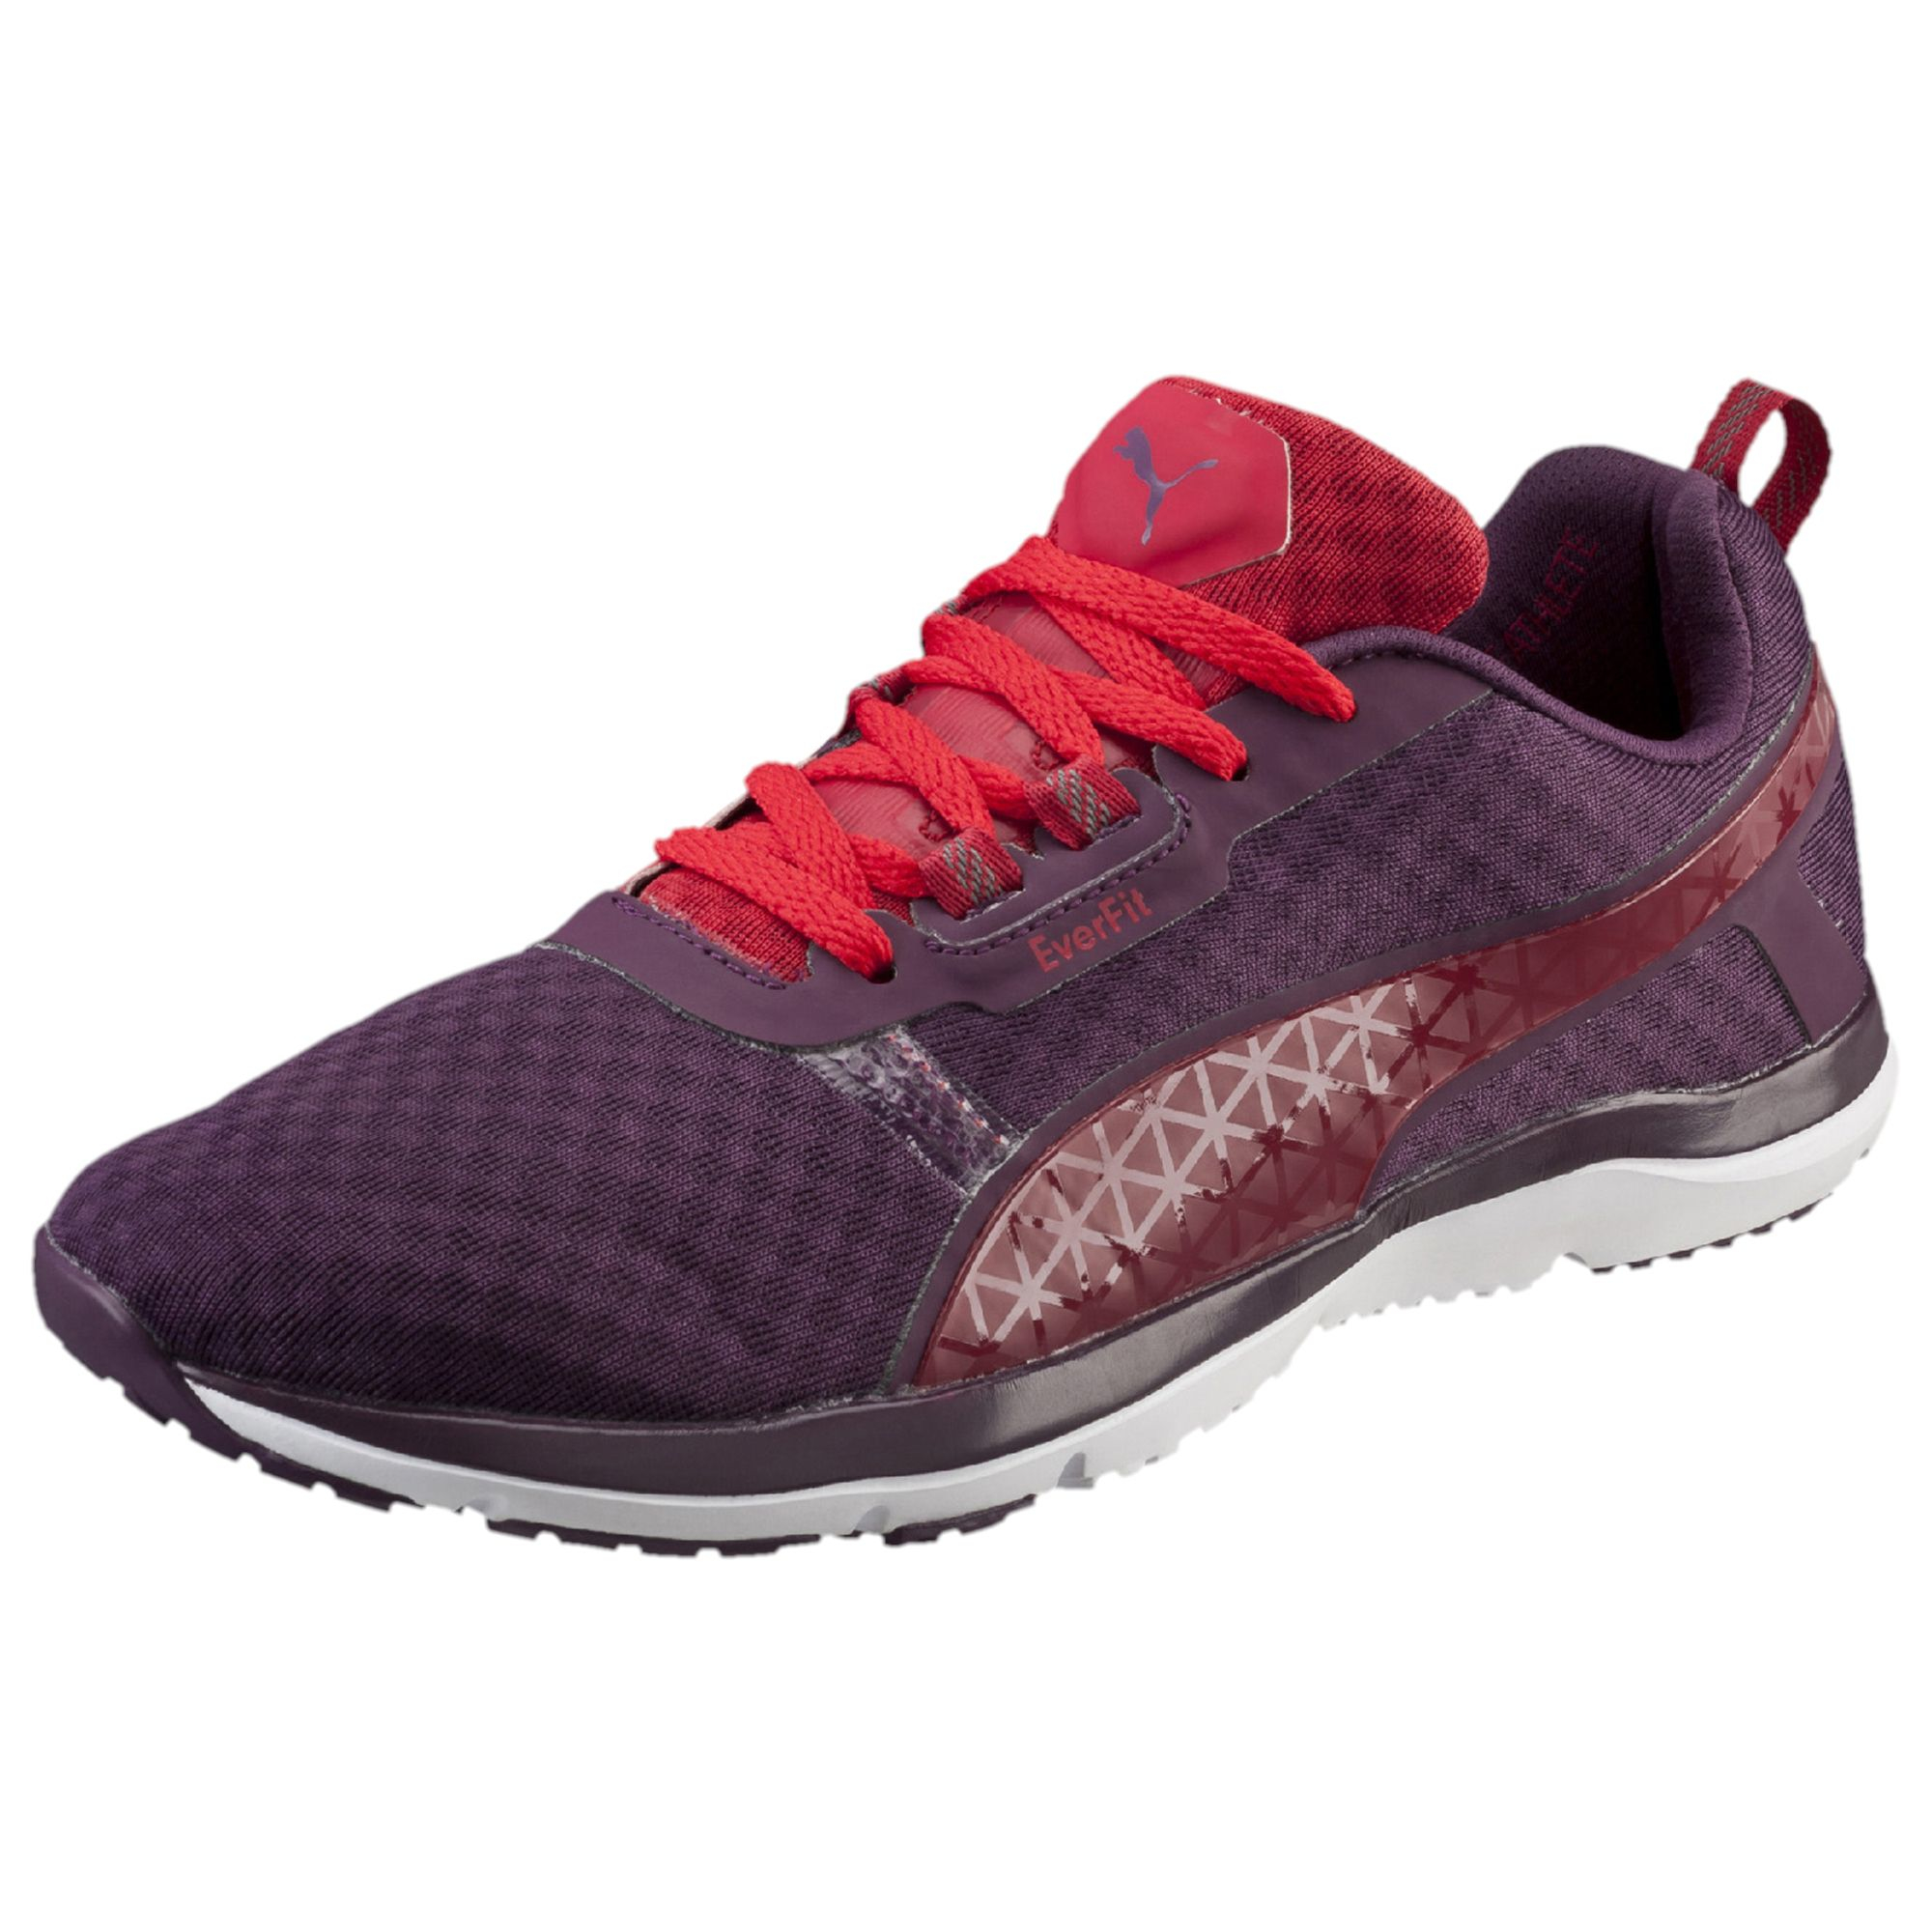 325488f3c3b Lyst - Puma Pulse Flex Xt Matte Women s Training Shoes in Purple